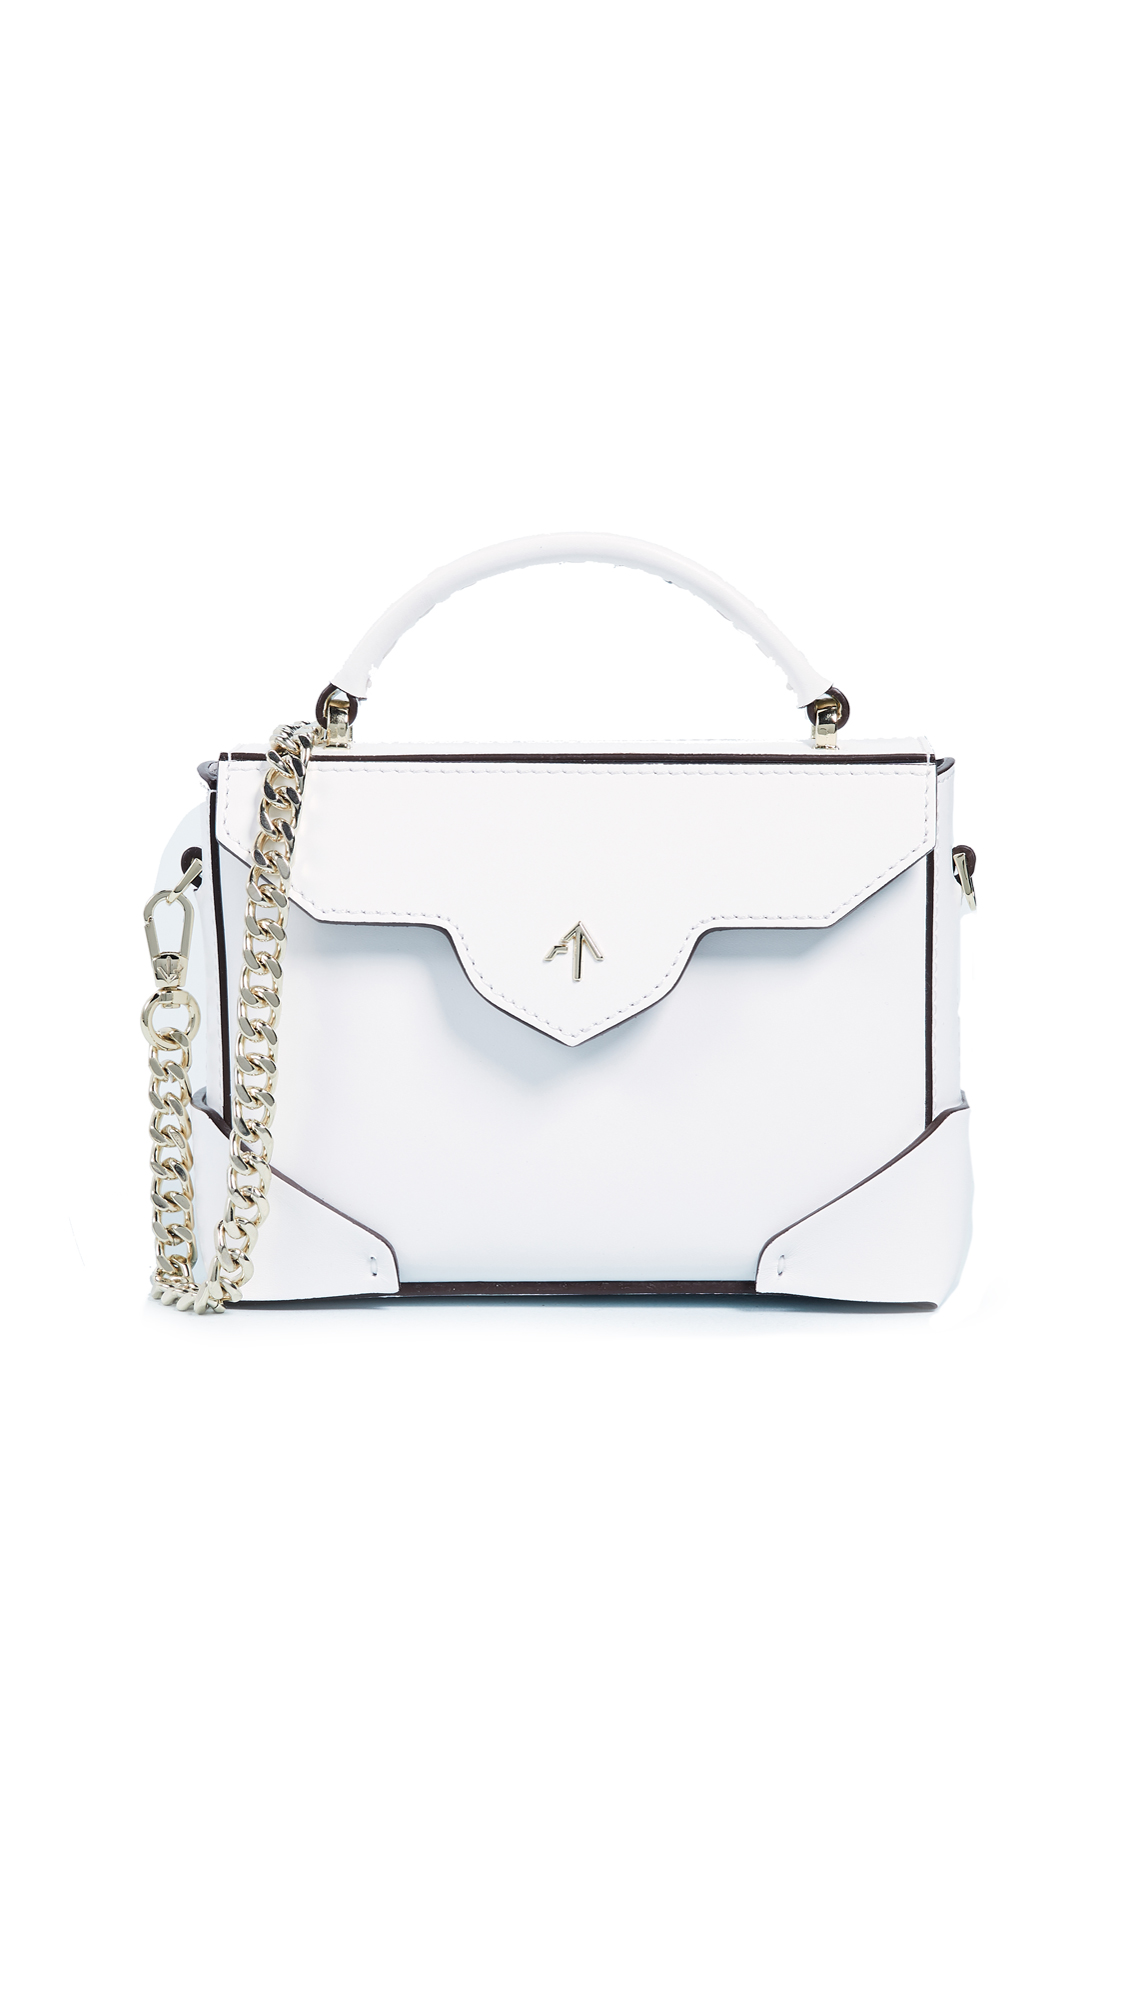 MICRO BOLD TOP HANDLE BAG WITH GOLD CHAIN